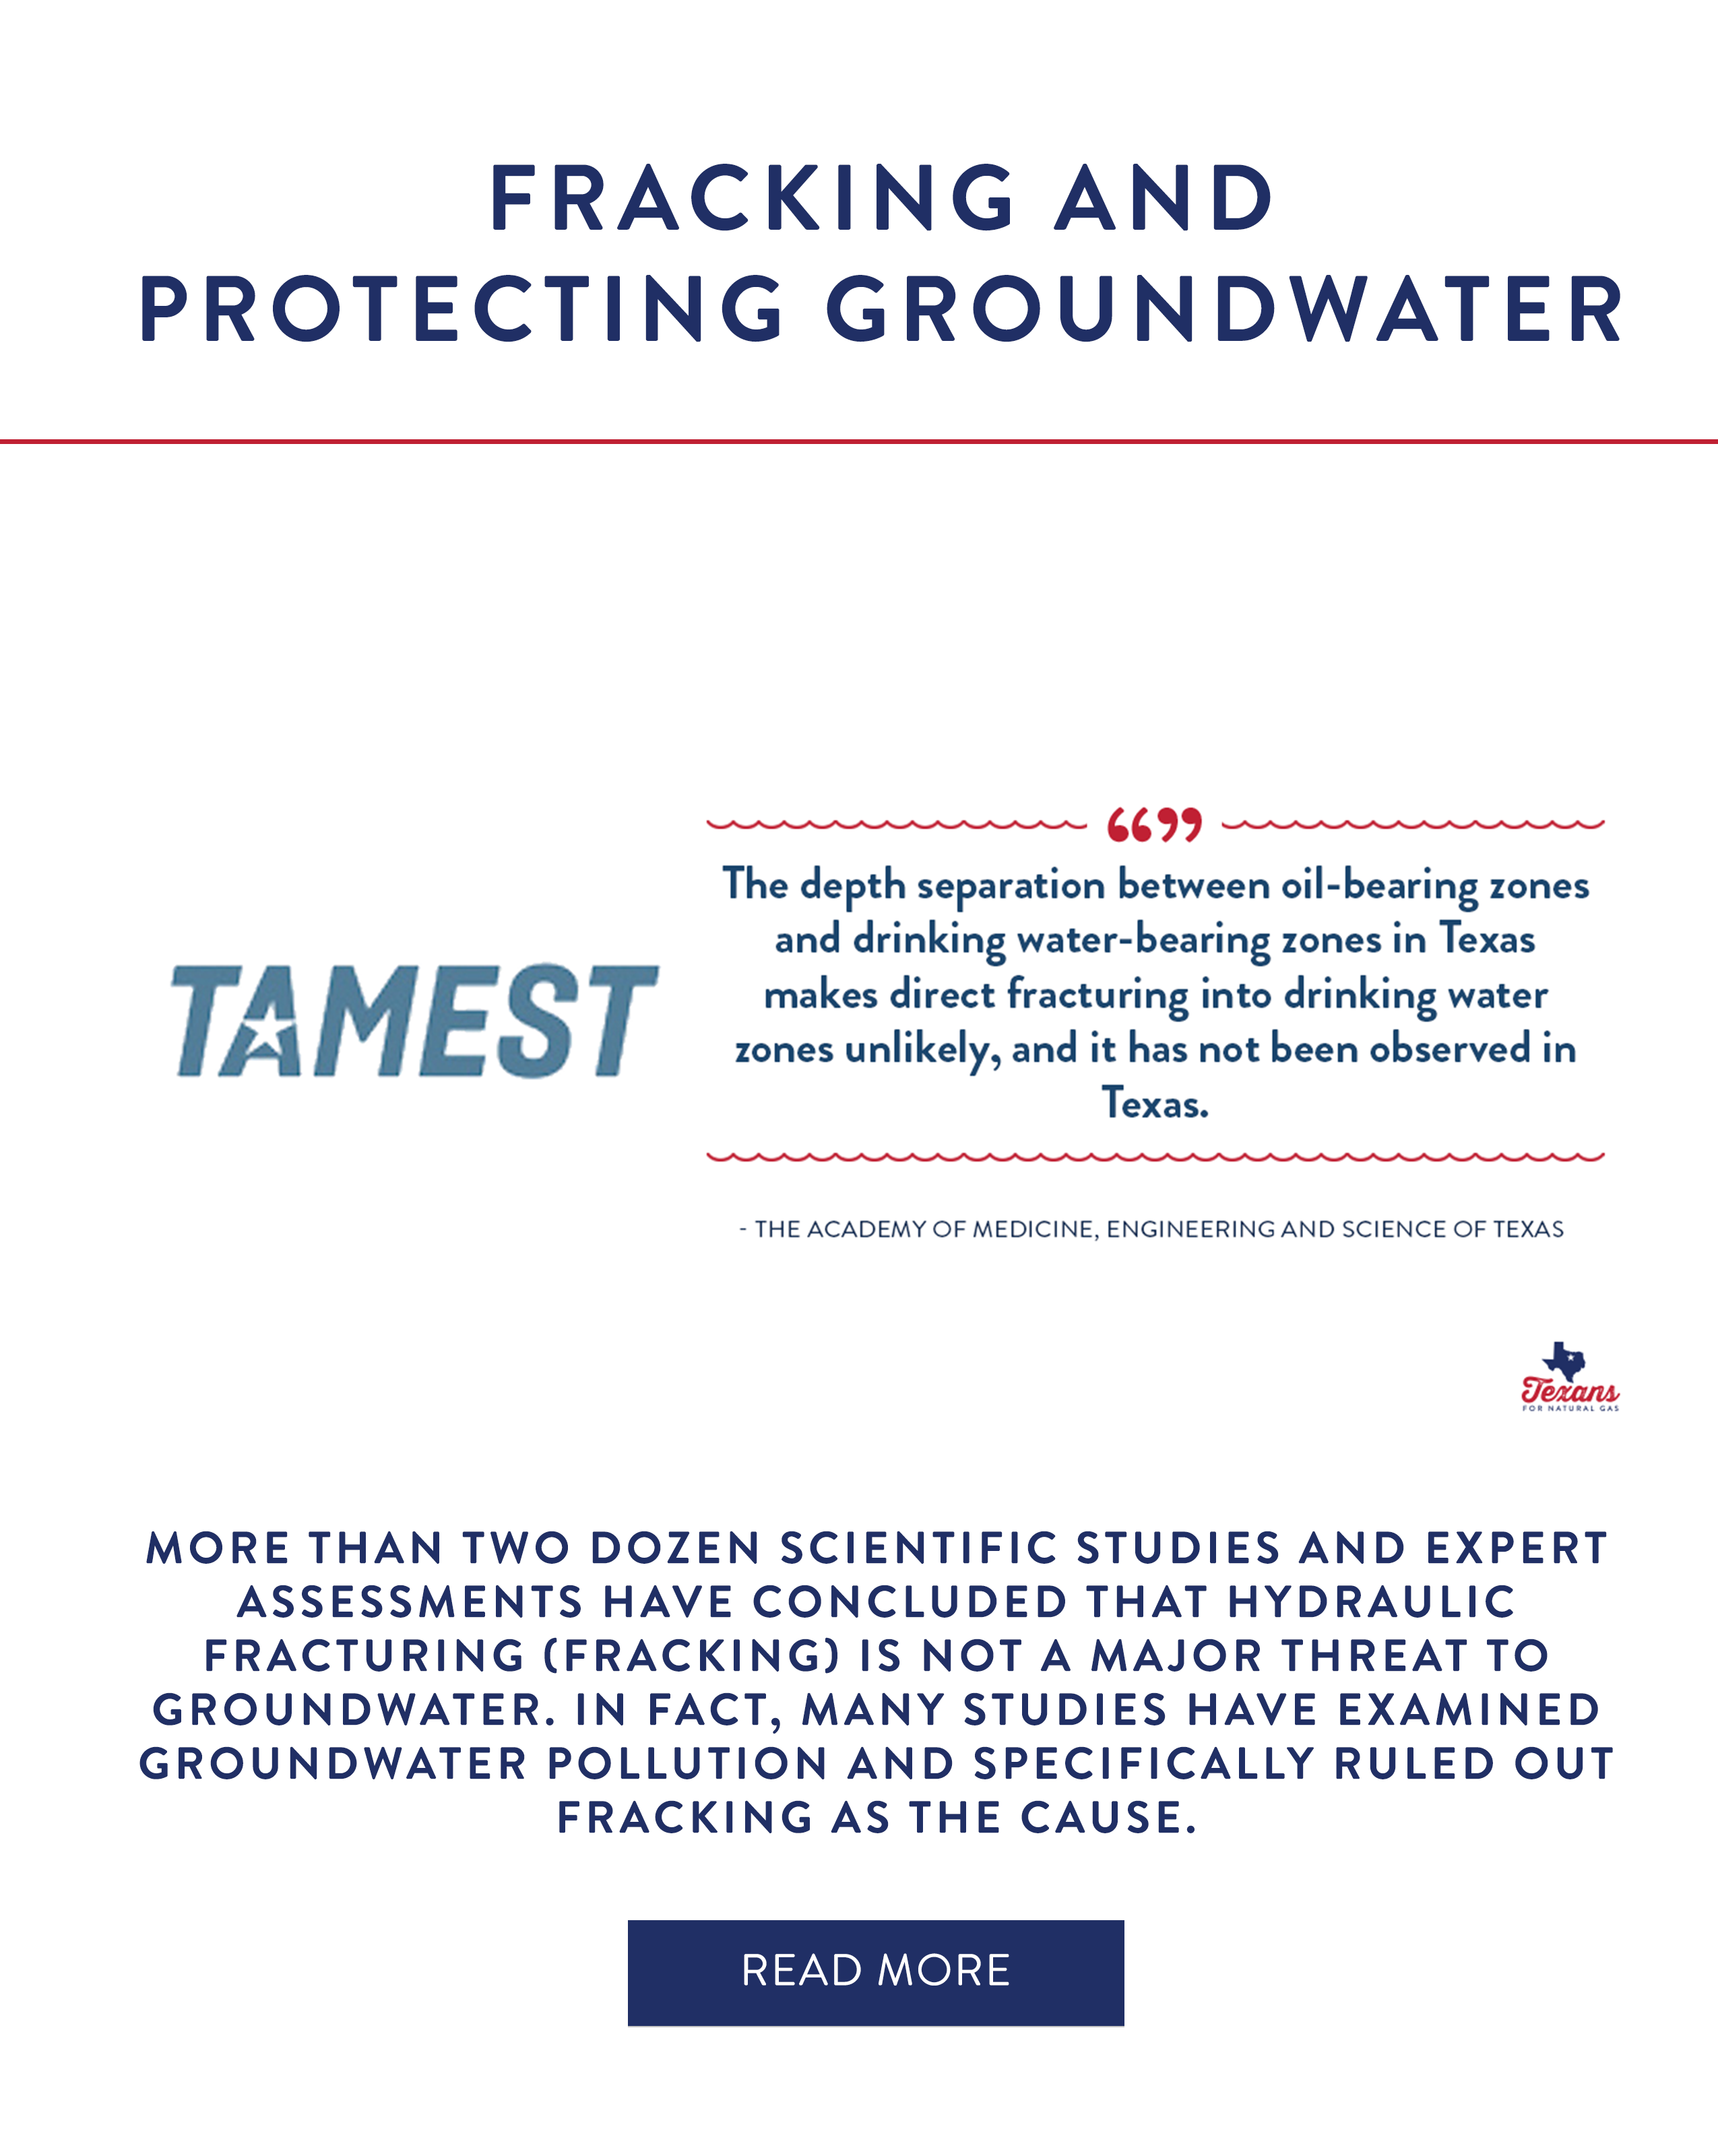 Fracking & Protecting Groundwater